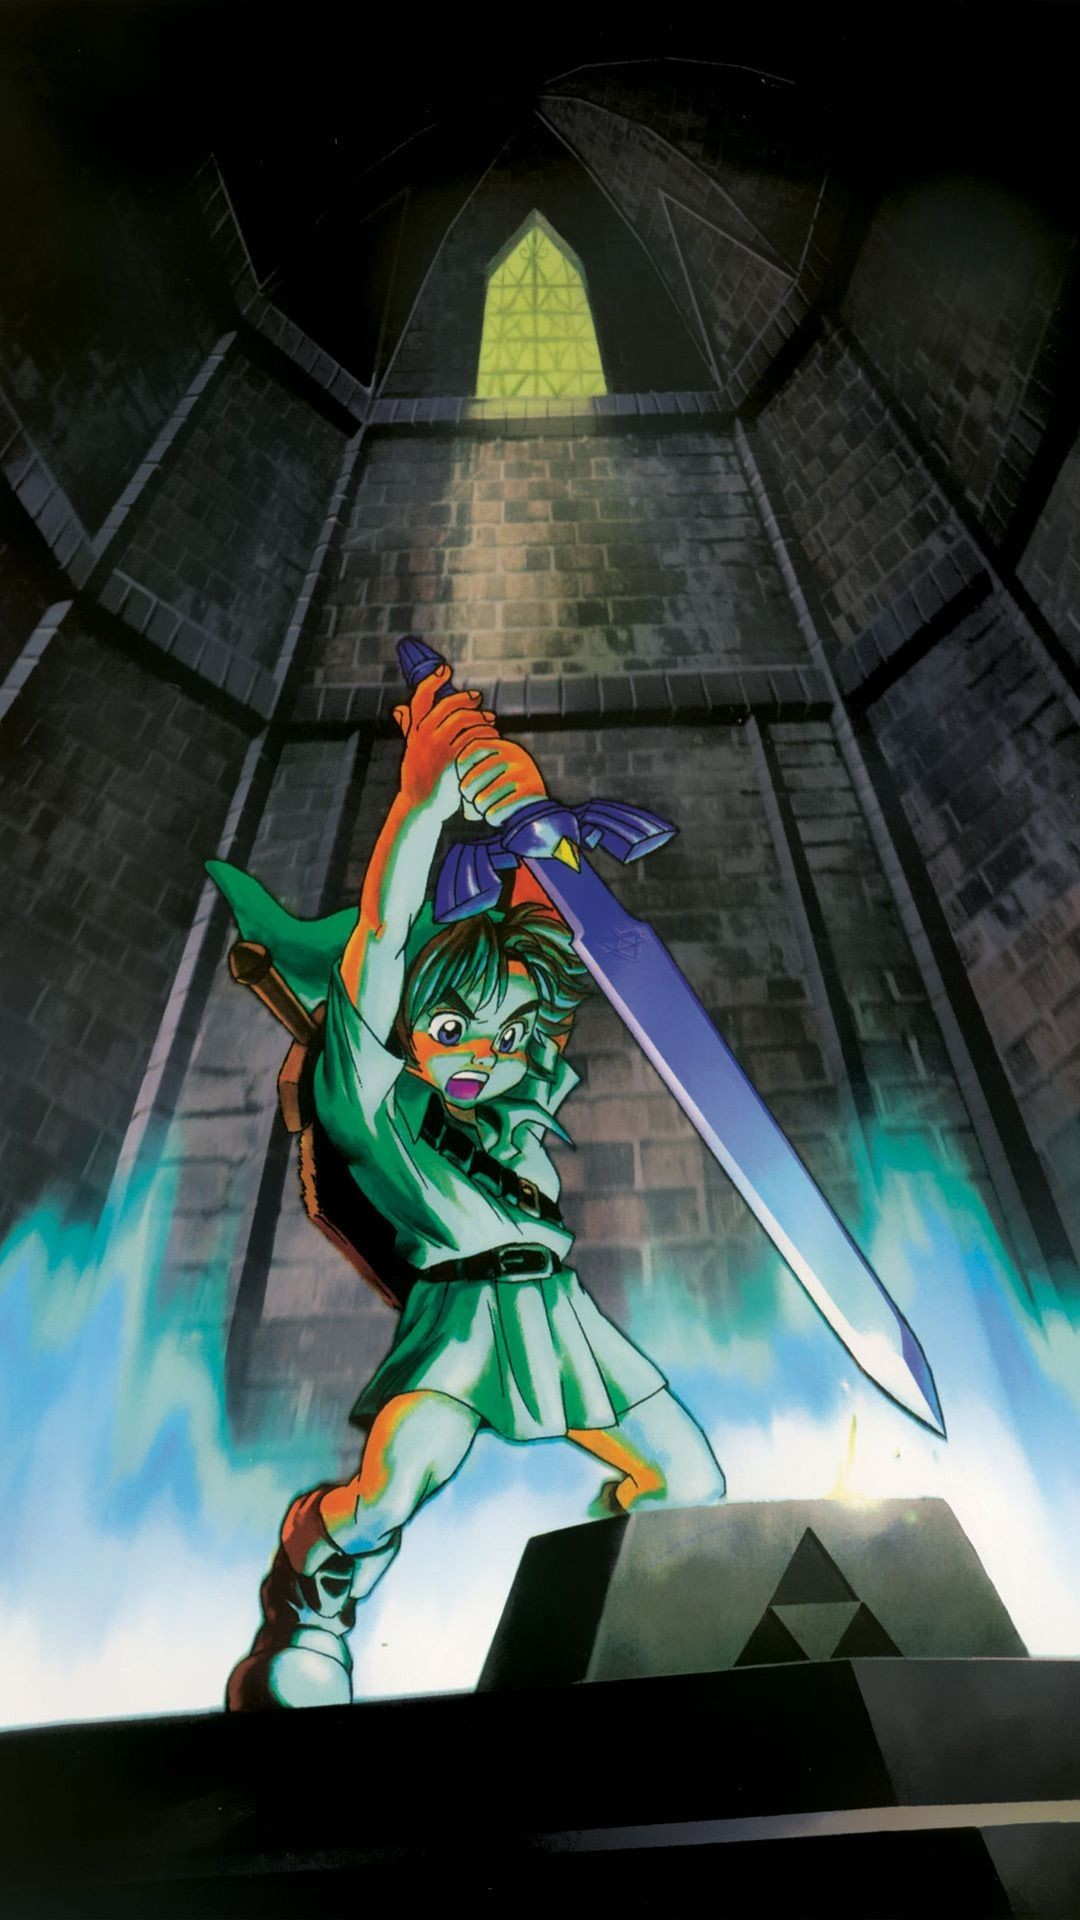 1080x1920 master-sword-wallpaper-1080×1920-image-WTG20042532